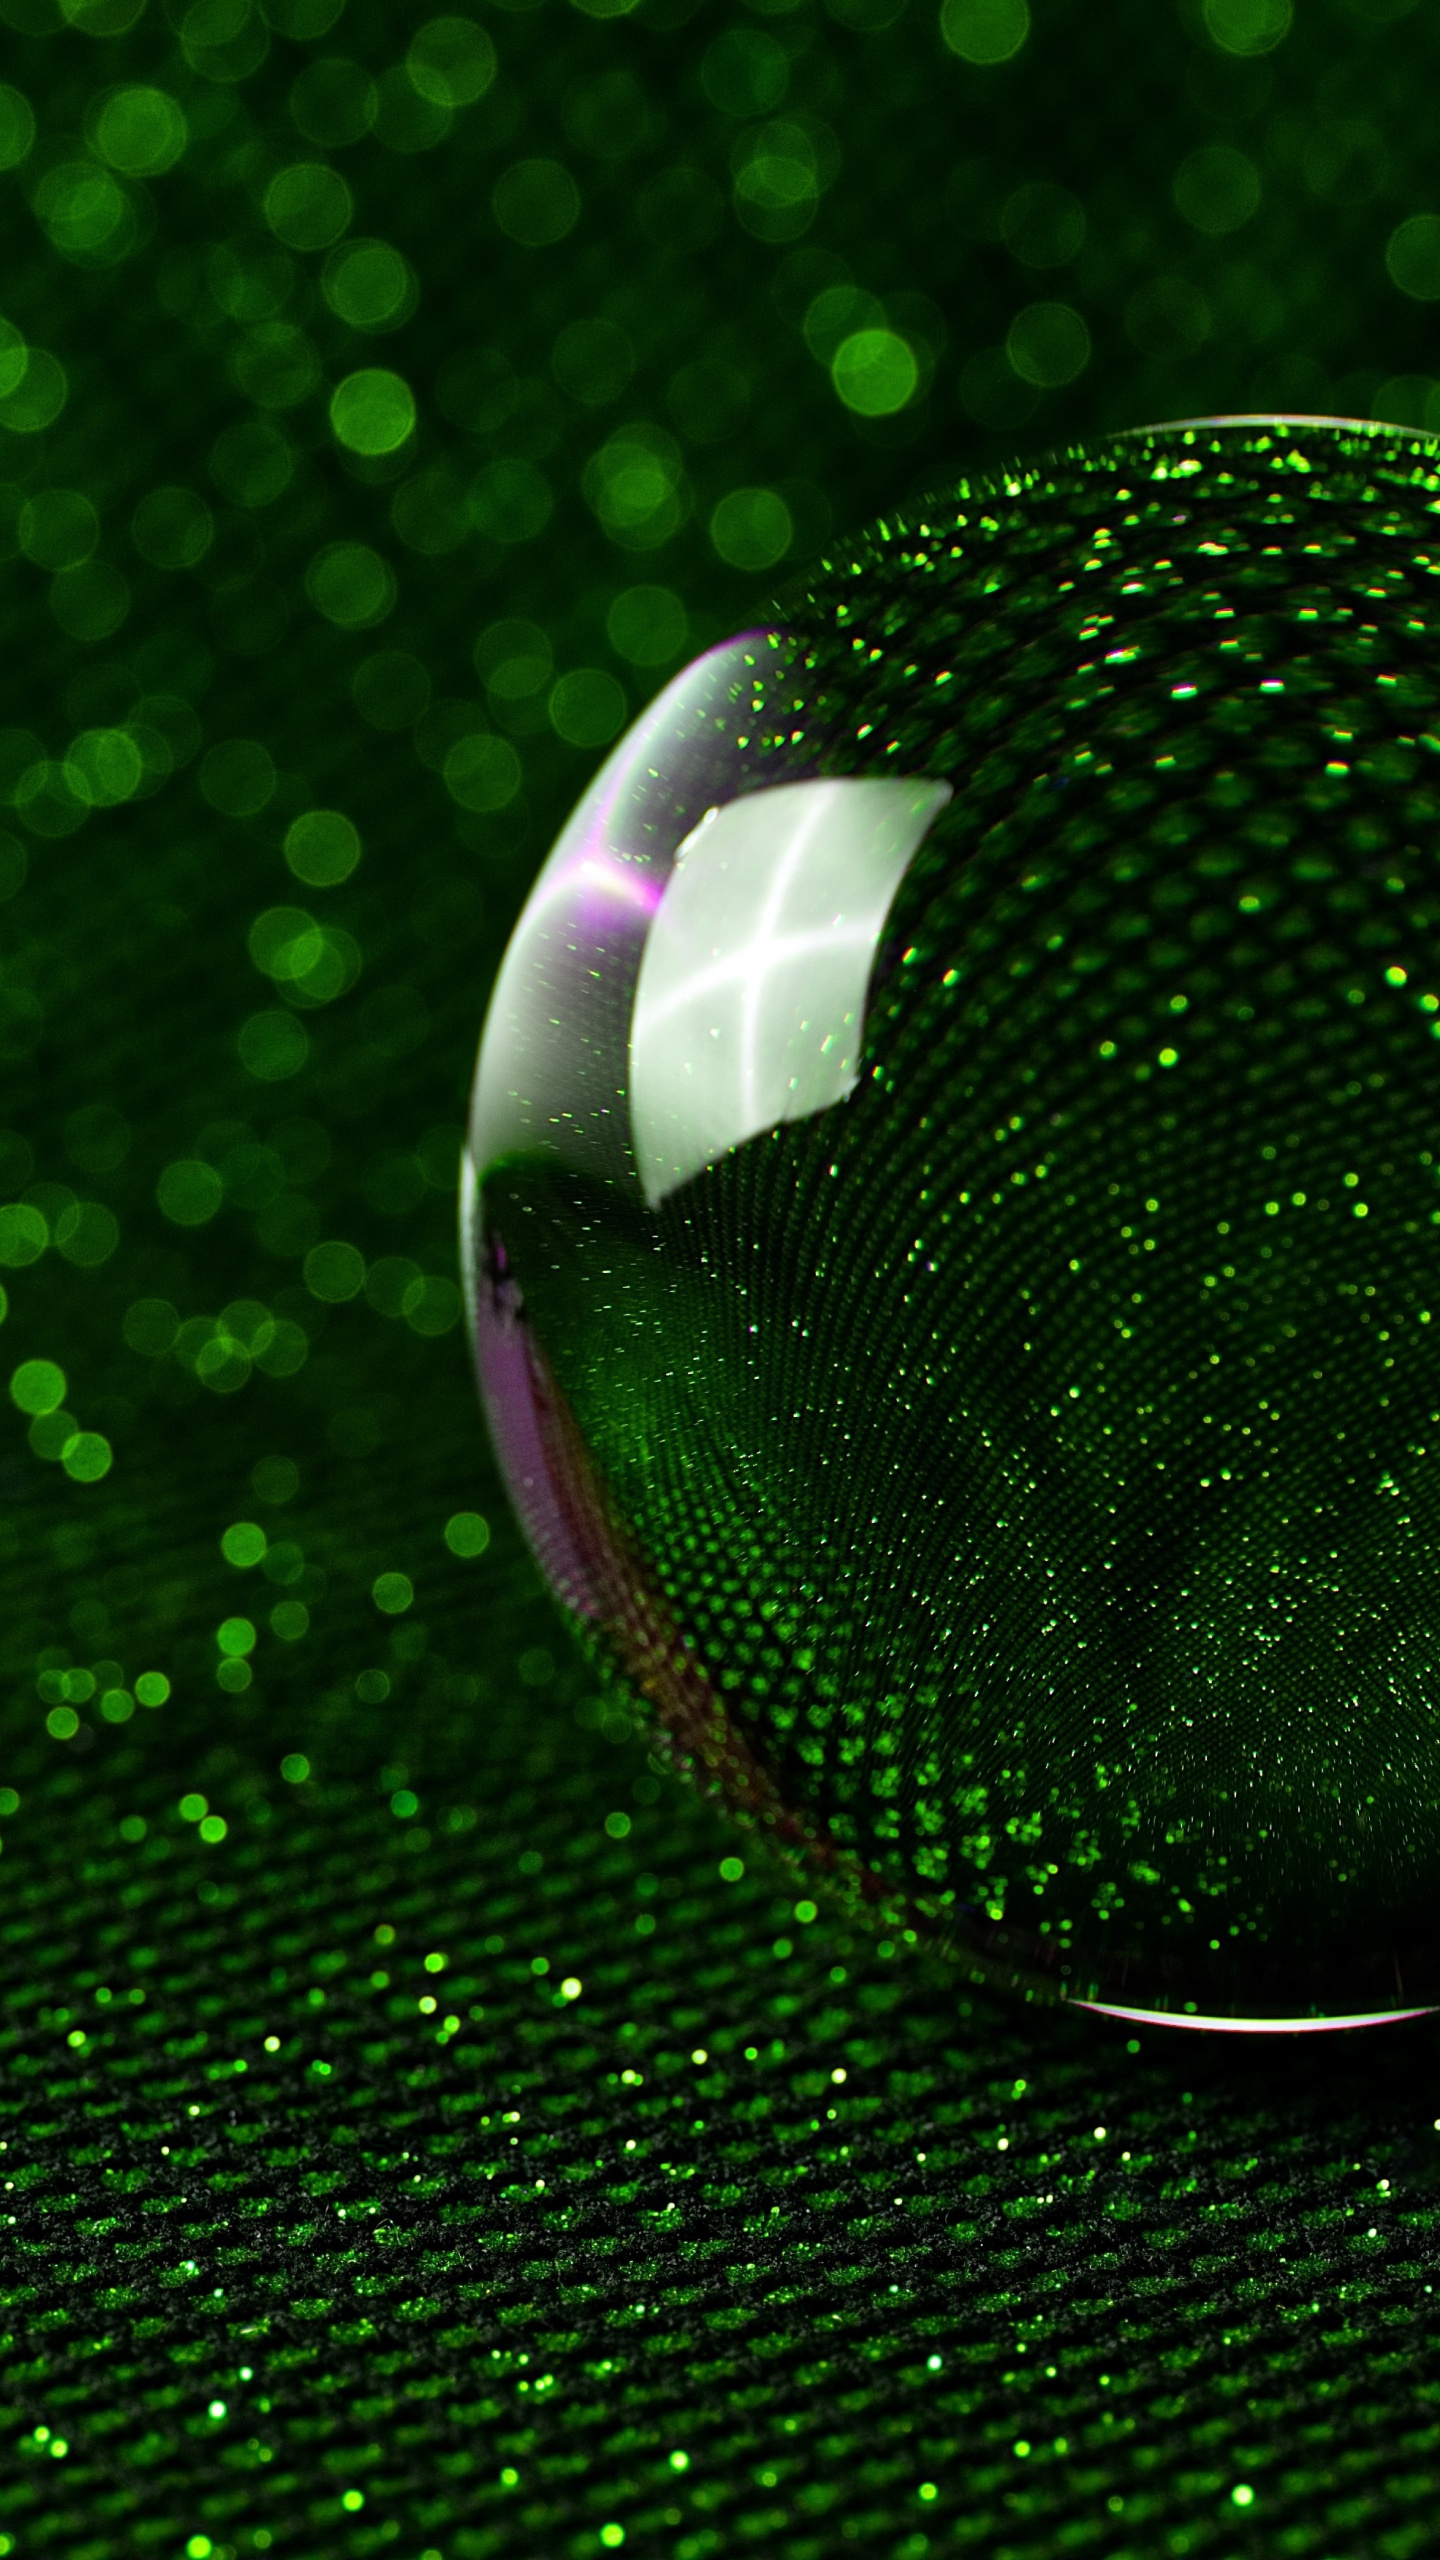 Sphere 3d Glass Ball Green Glitter Wallpaper Samsung S7 Edge 3d 1440x2560 Wallpaper Teahub Io